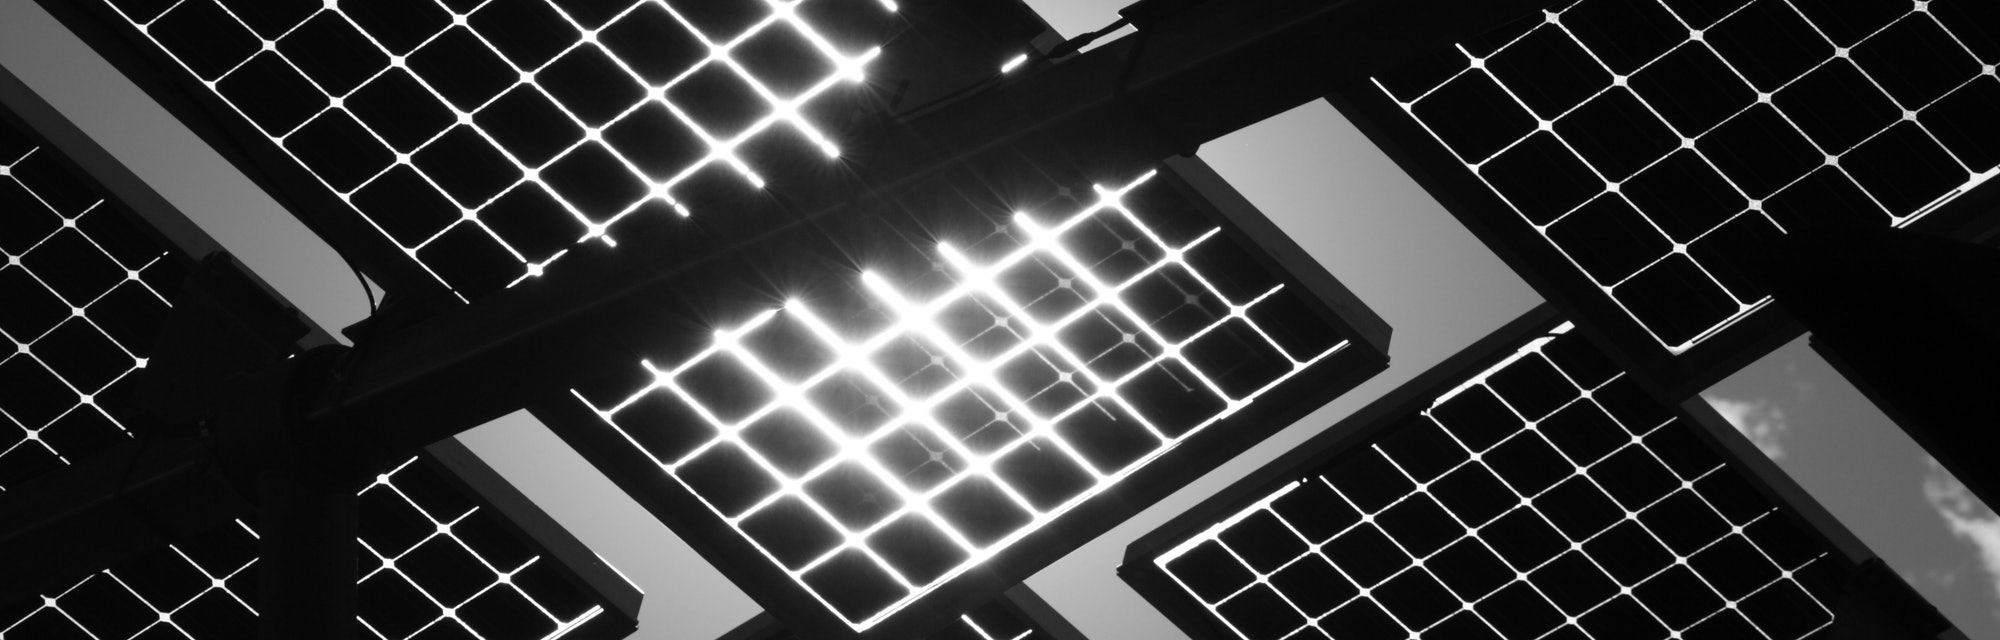 Solar panels on supported structure backlit by the sun